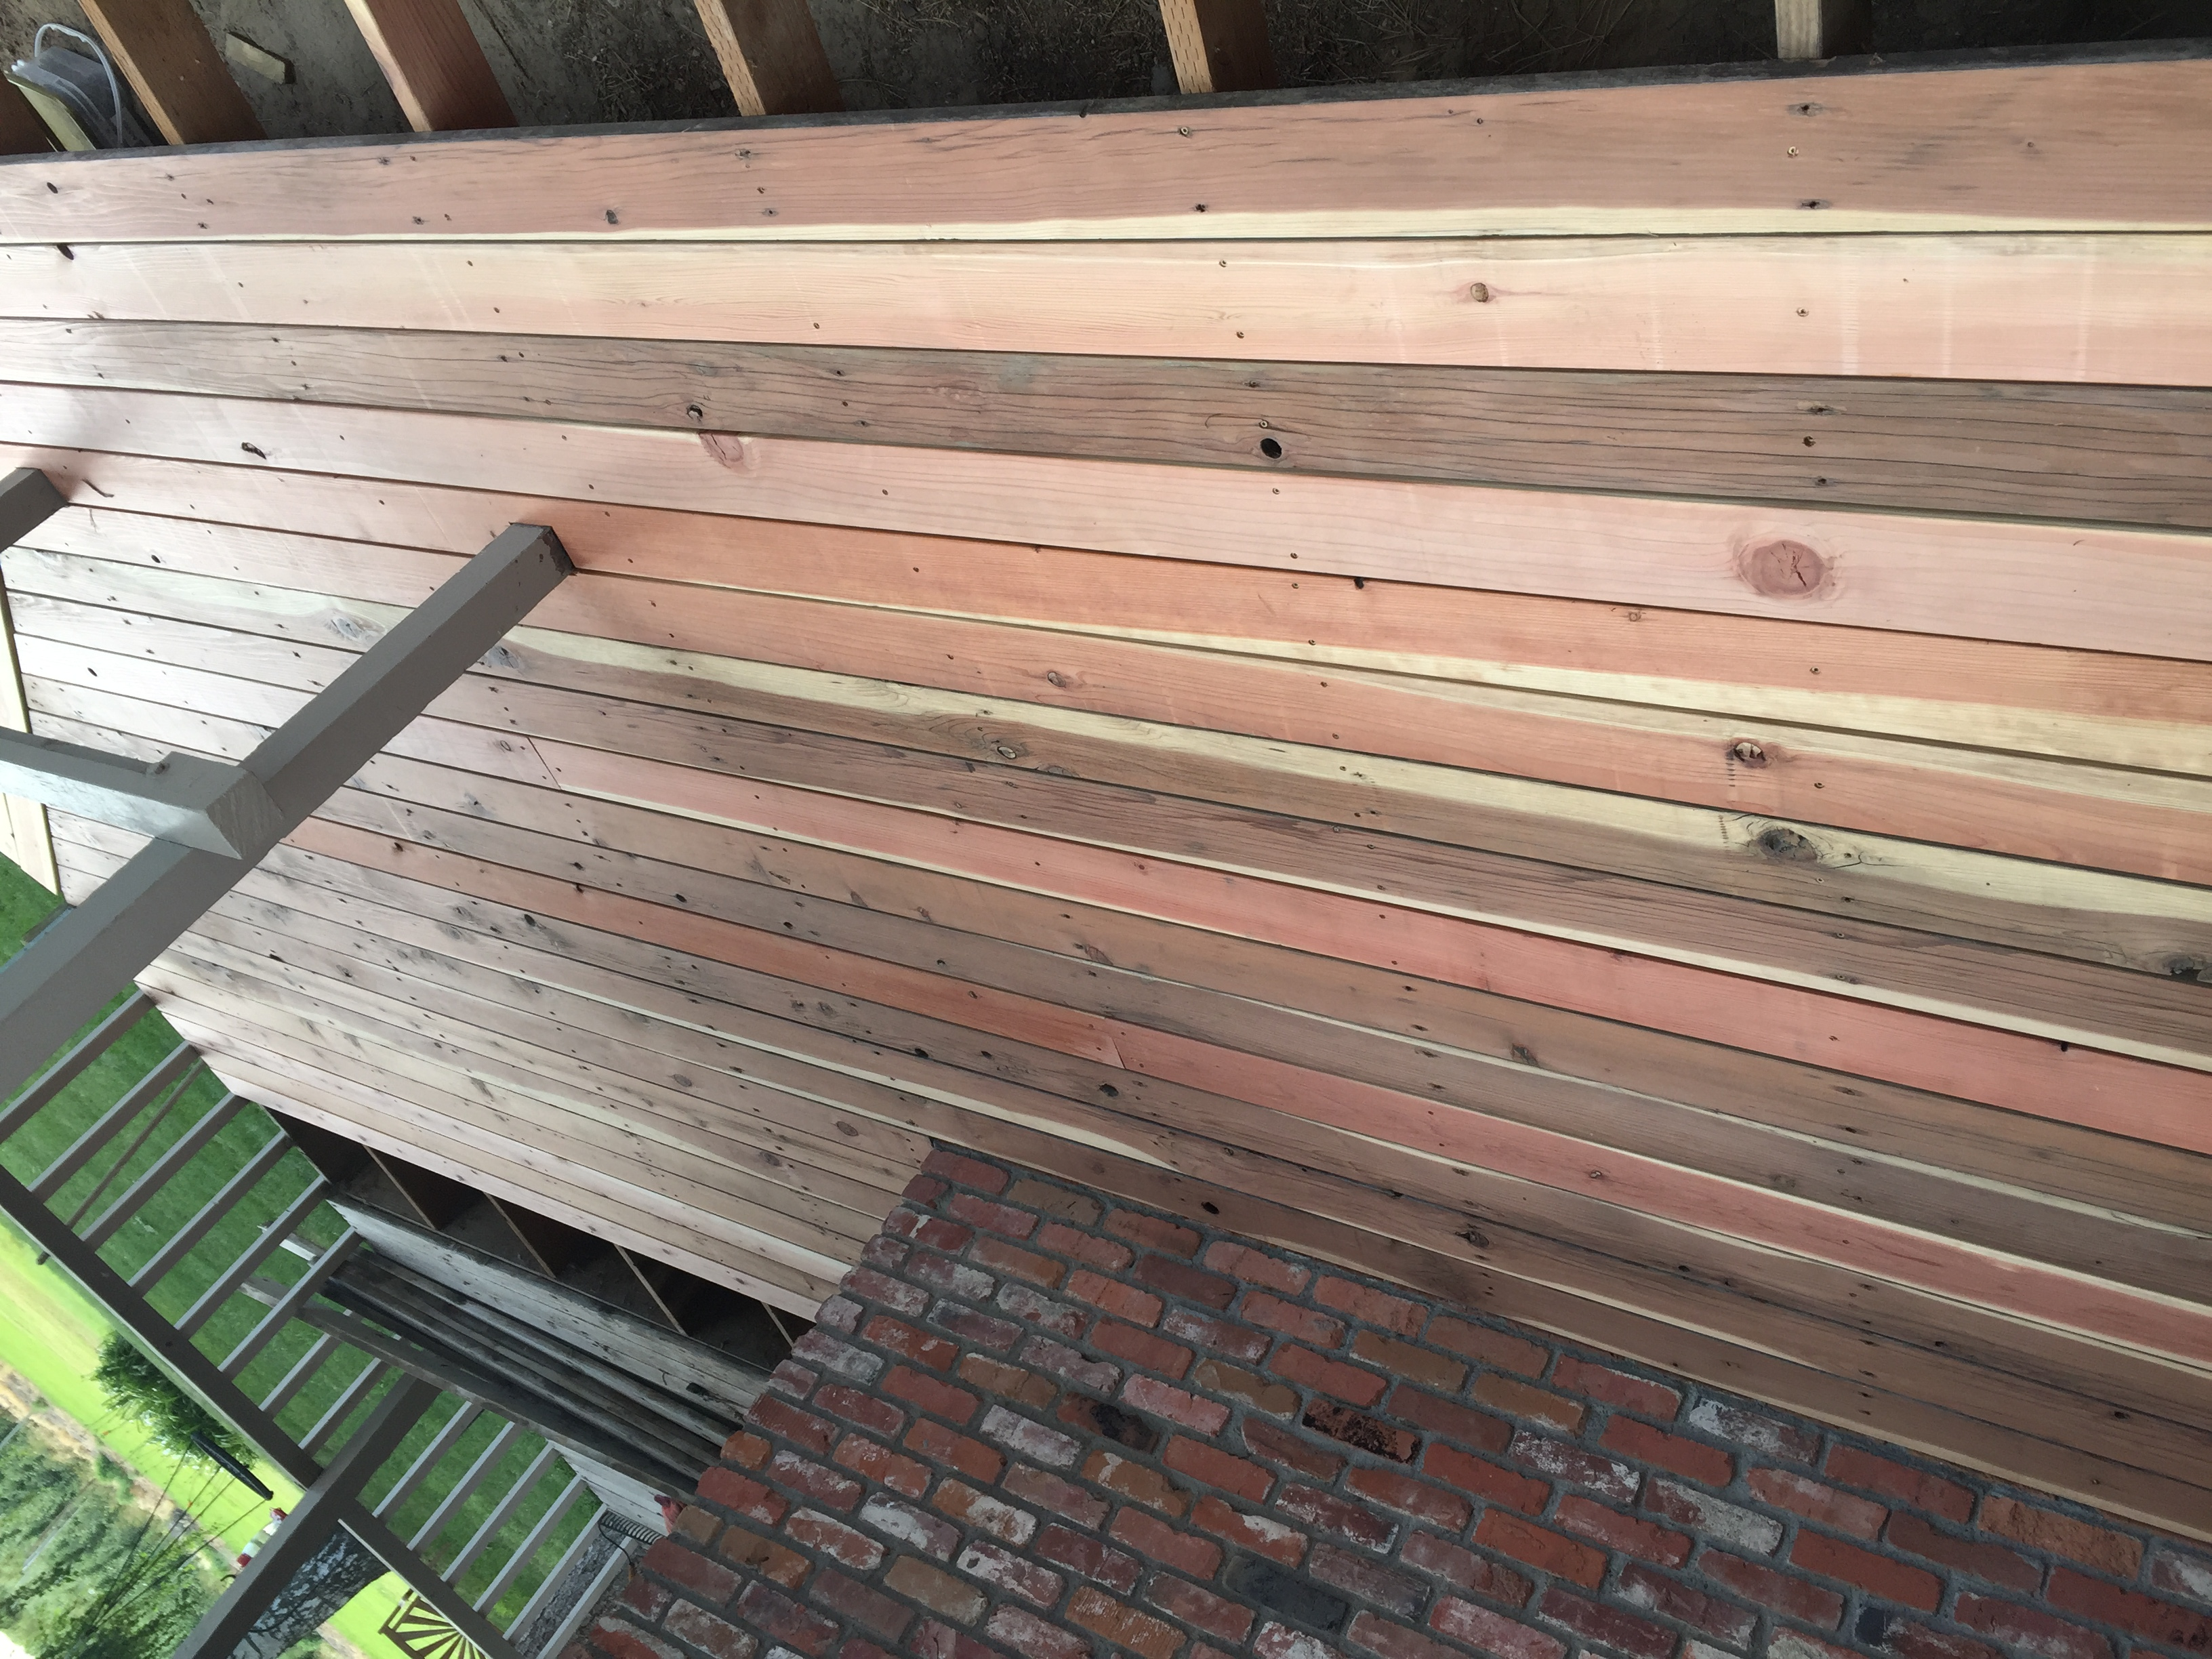 New Redwood Deck Staining Tips | Best Deck Stain Reviews Ratings